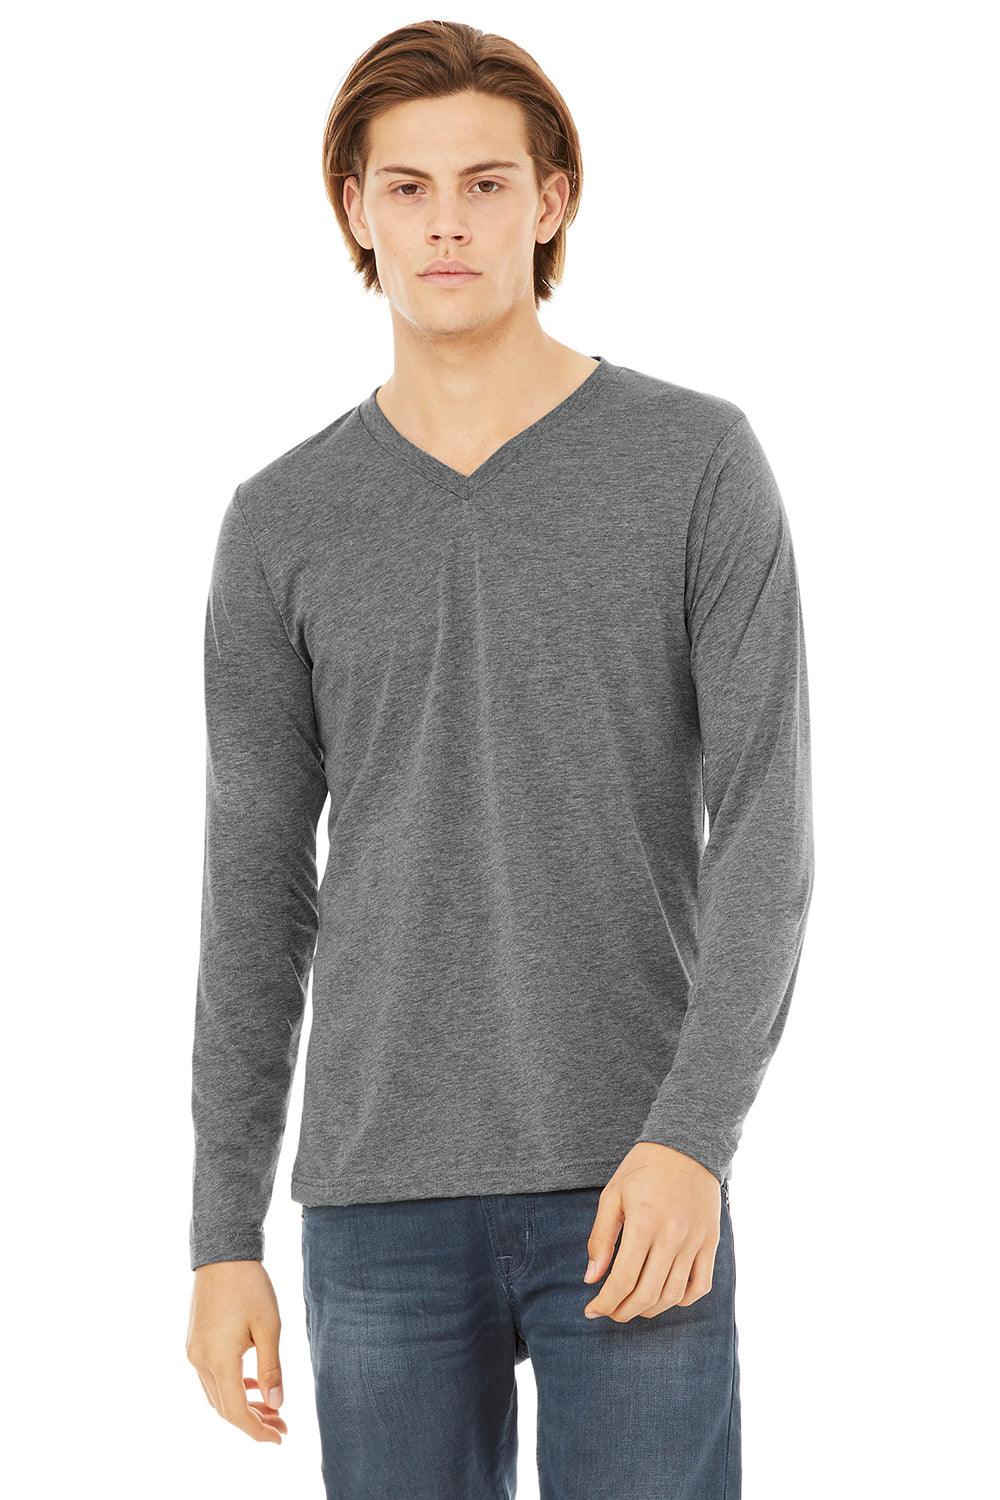 Bella + Canvas 3425 Mens Jersey Long Sleeve V-Neck T-Shirt Grey Front